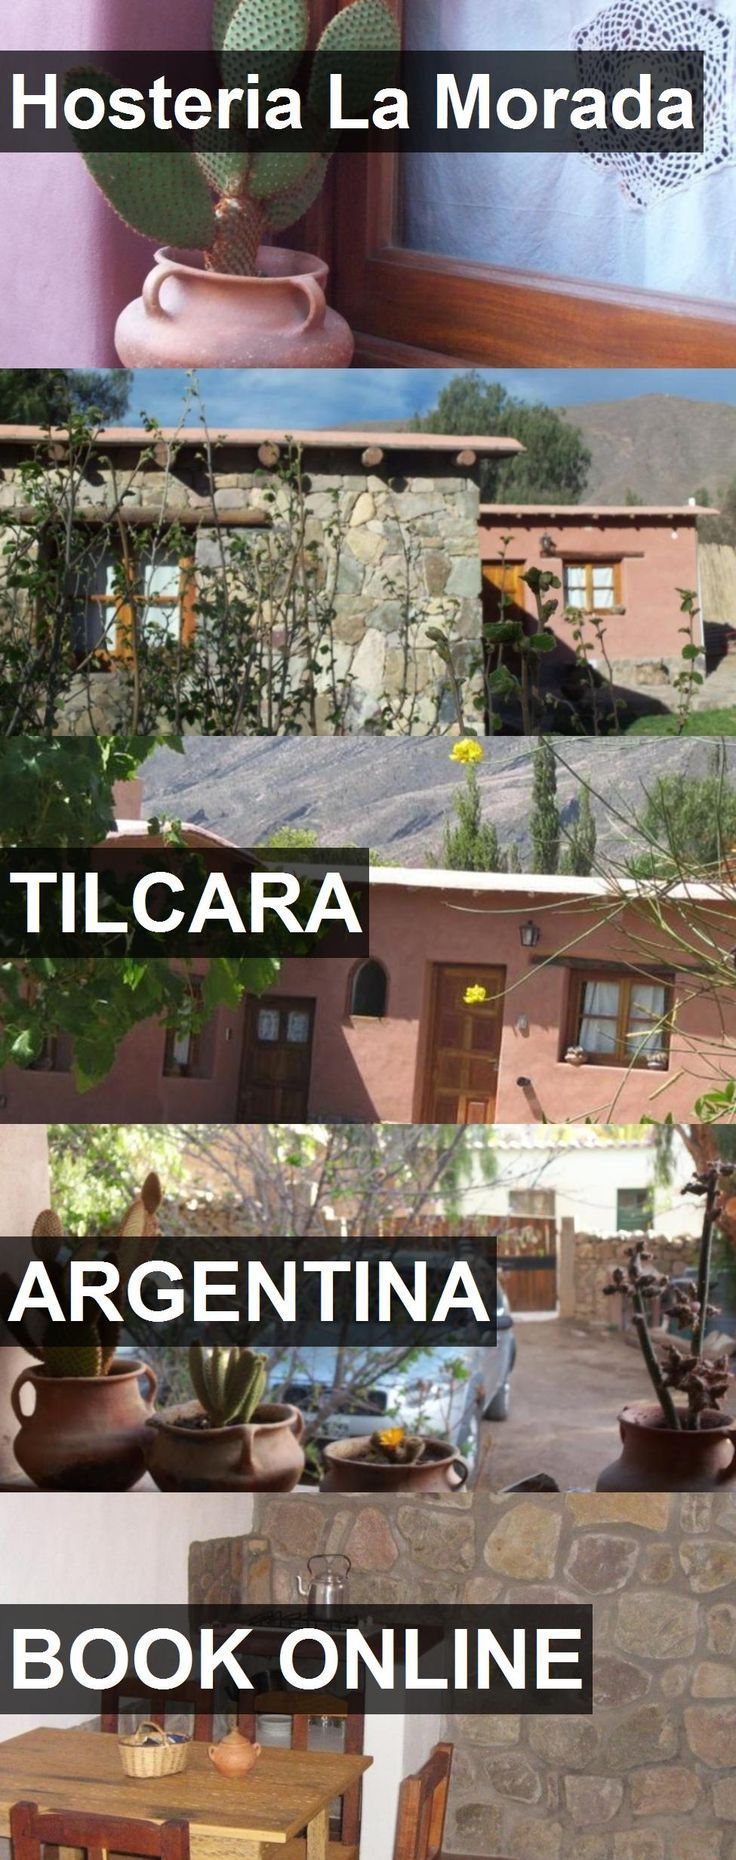 Hotel Hosteria La Morada in Tilcara, Argentina. For more information, photos, reviews and best prices please follow the link. #Argentina #Tilcara #travel #vacation #hotel